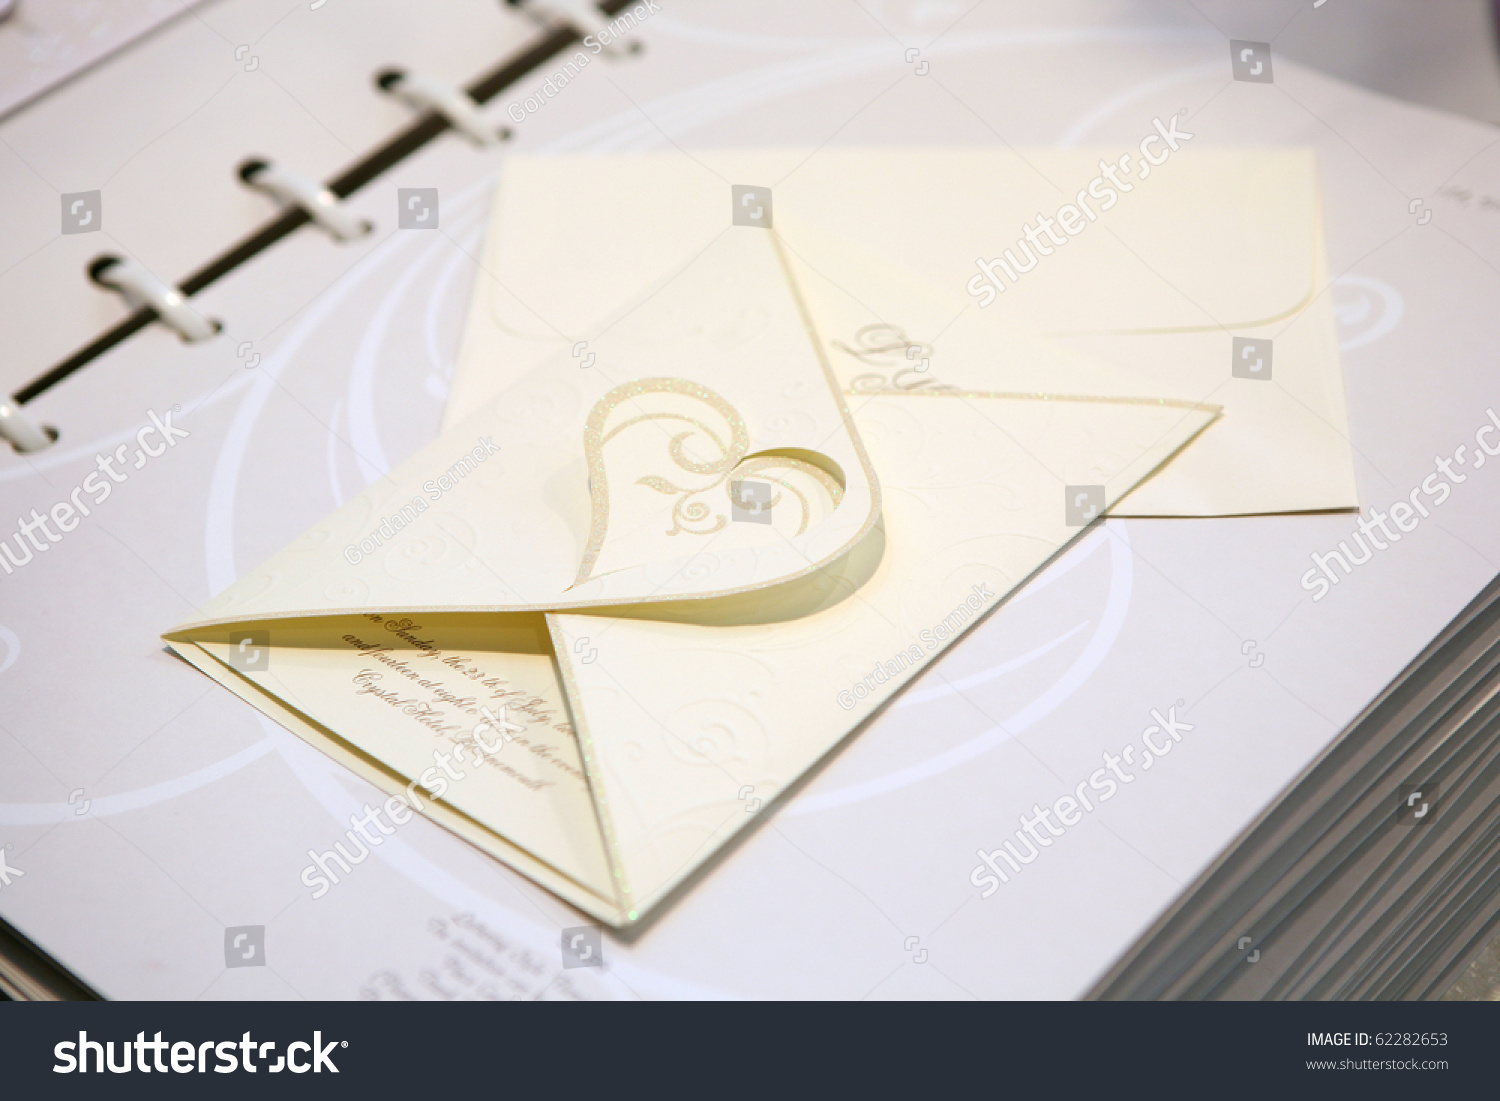 96+ [ Wedding Invitation Paper Stock Wedding Invitation Paper Stock ] - Clean Simple And Pressed ...